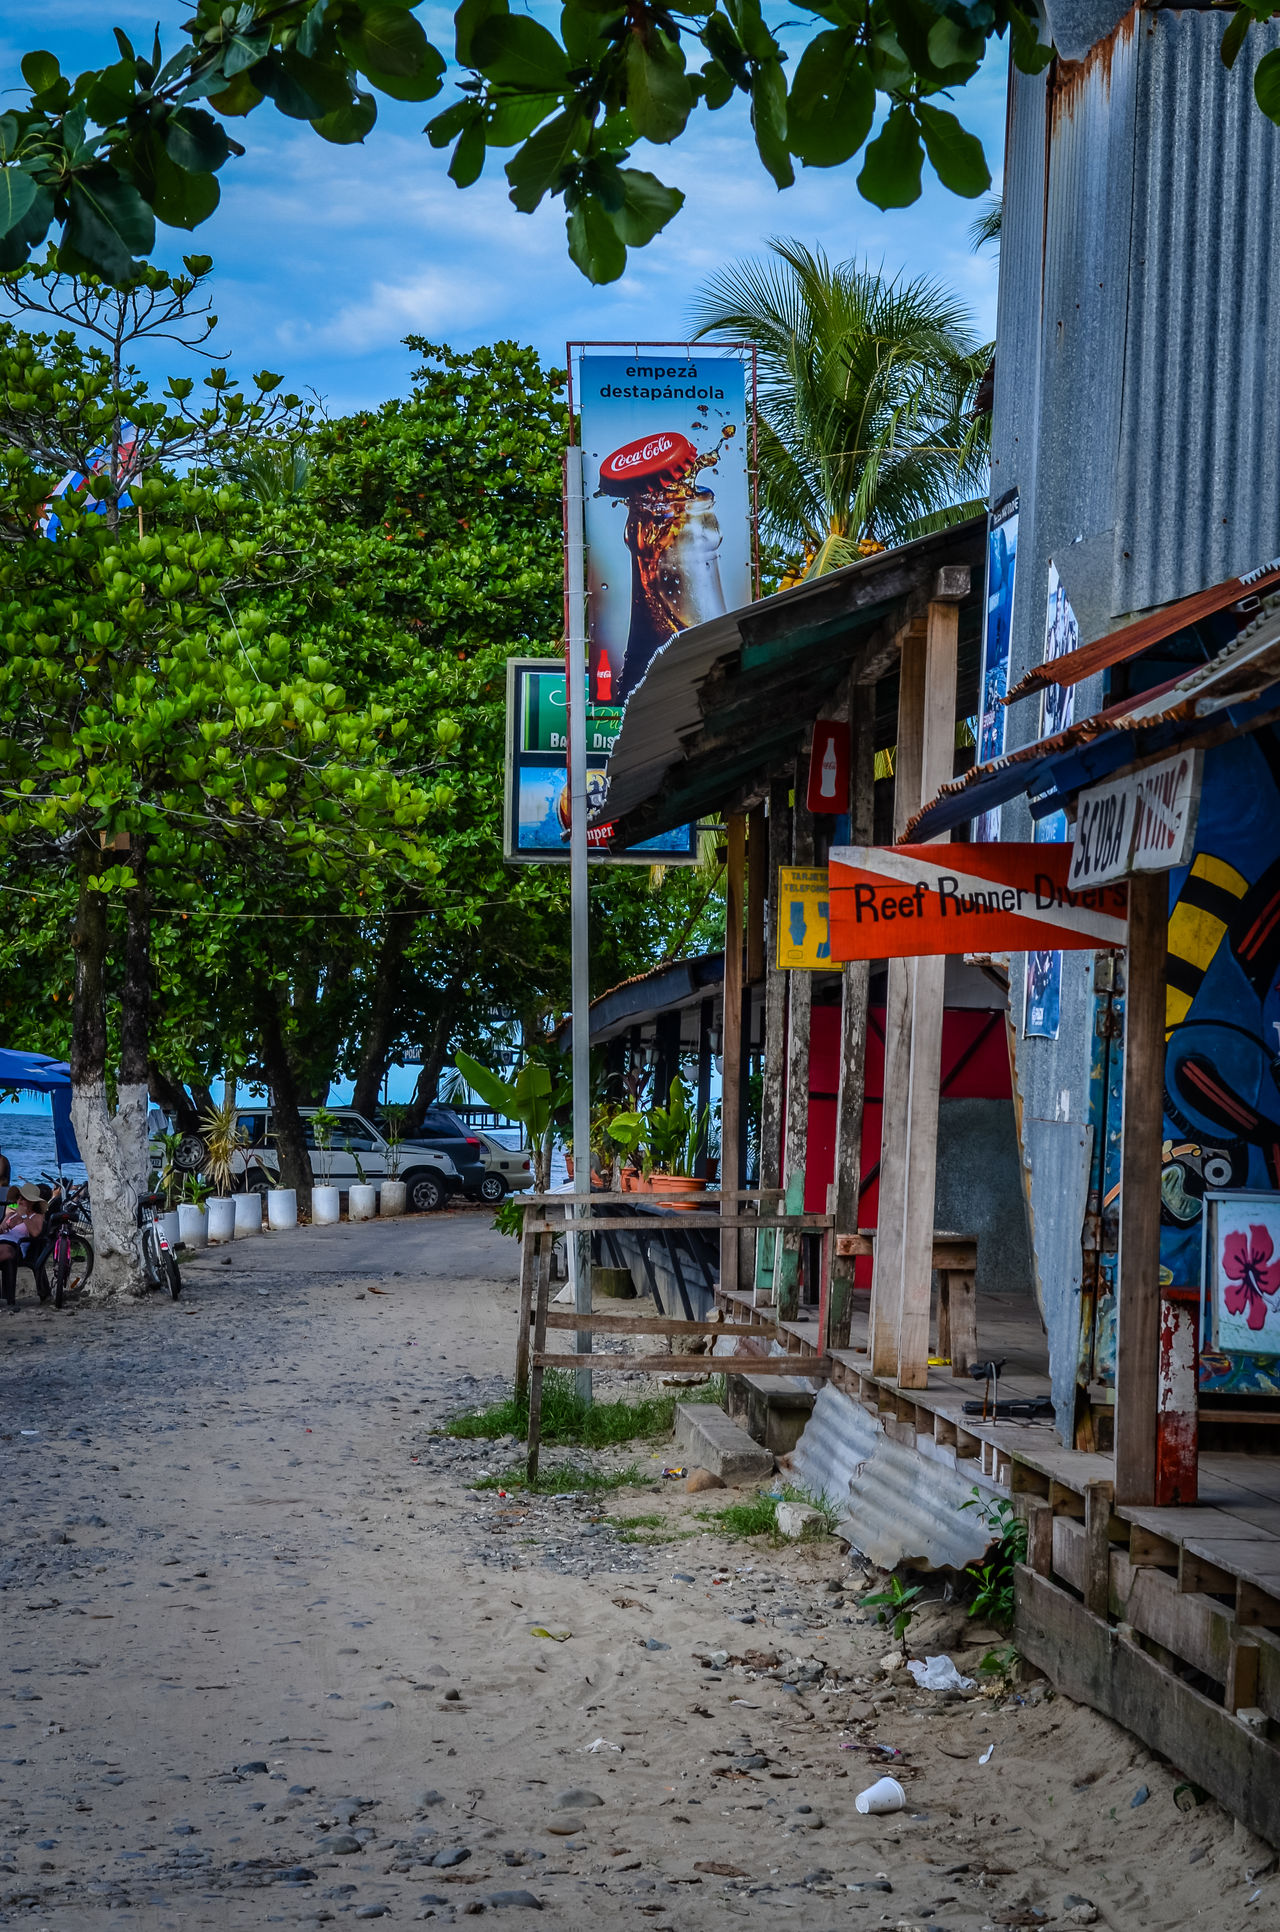 Beach Beach Bar Central America Day Leisure Small Town Summer Tropical Town Tropics Vacation Life Is A Beach Travel On The Road The Great Outdoors - 2016 EyeEm Awards Feel The Journey Miles Away